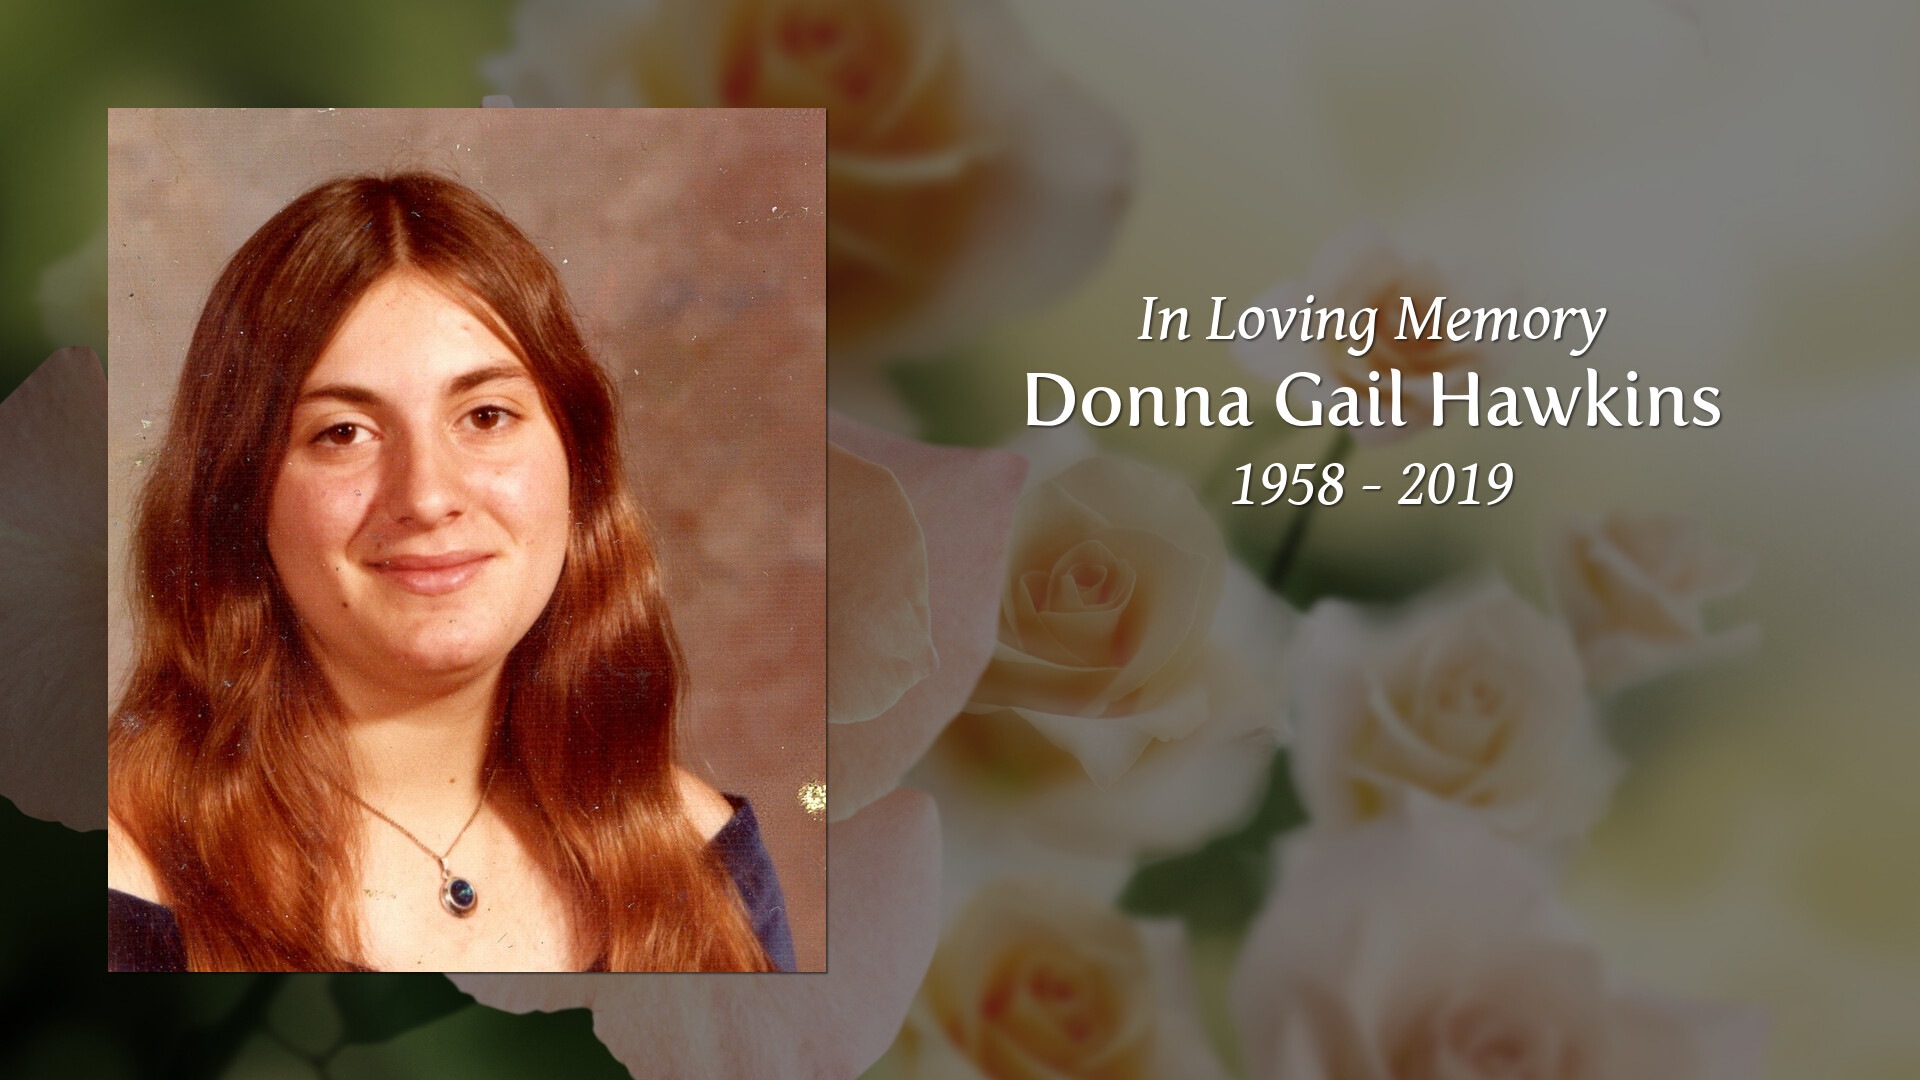 2f4d6526a2 Newcomer Family Obituaries - Donna Gail Hawkins 1958 - 2019 ...